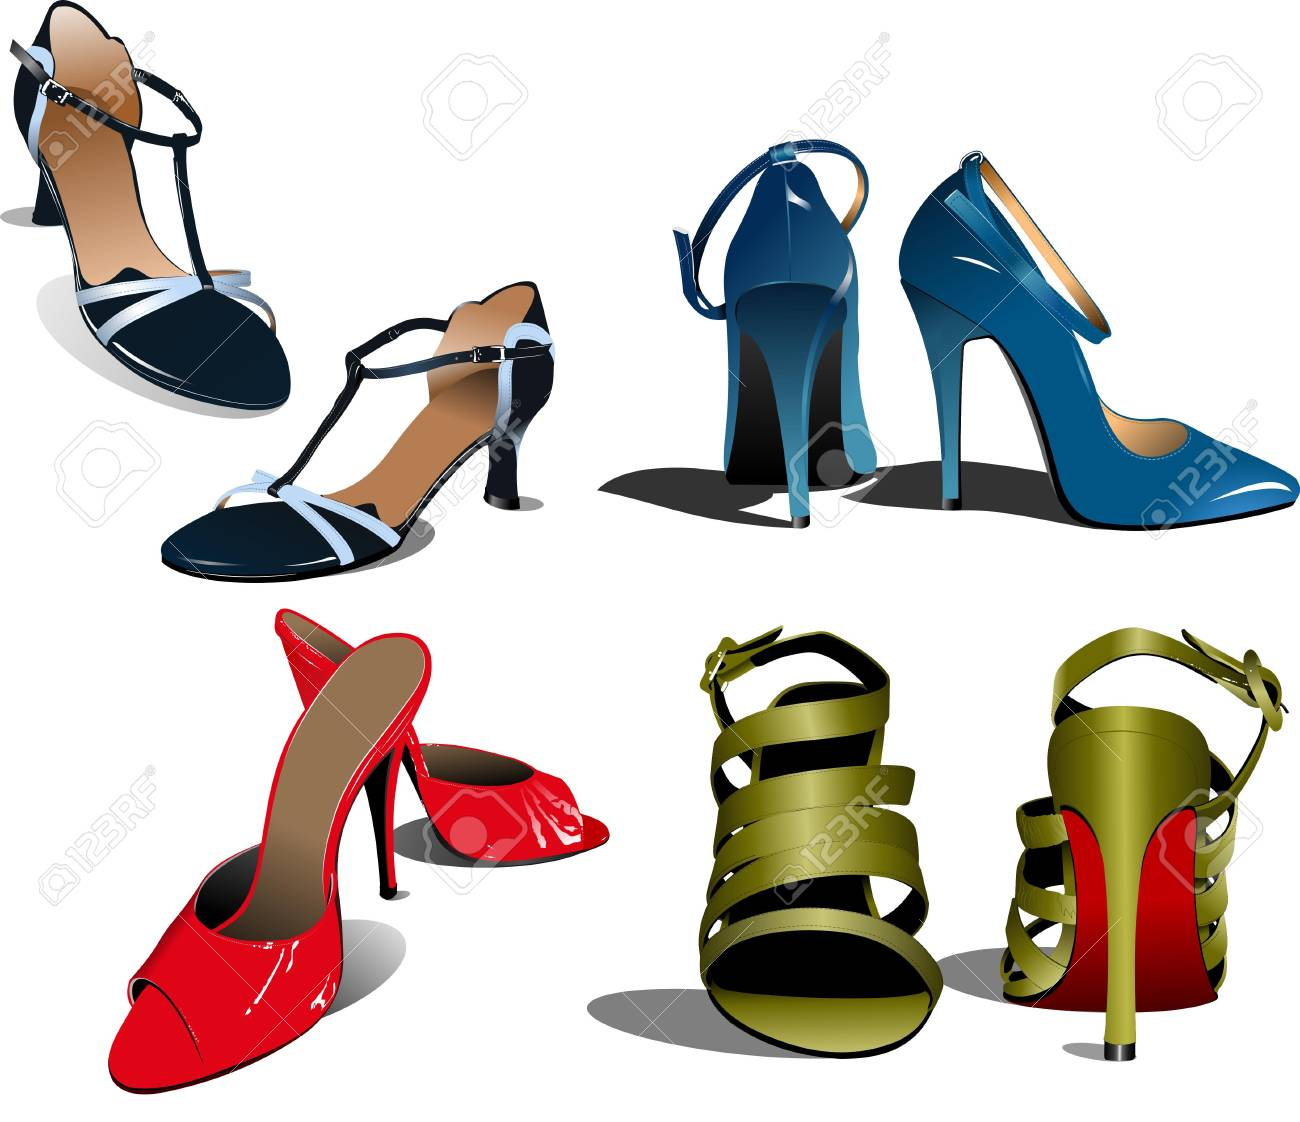 Fashion woman shoes. Vector illustration Stock Illustration - 9701138